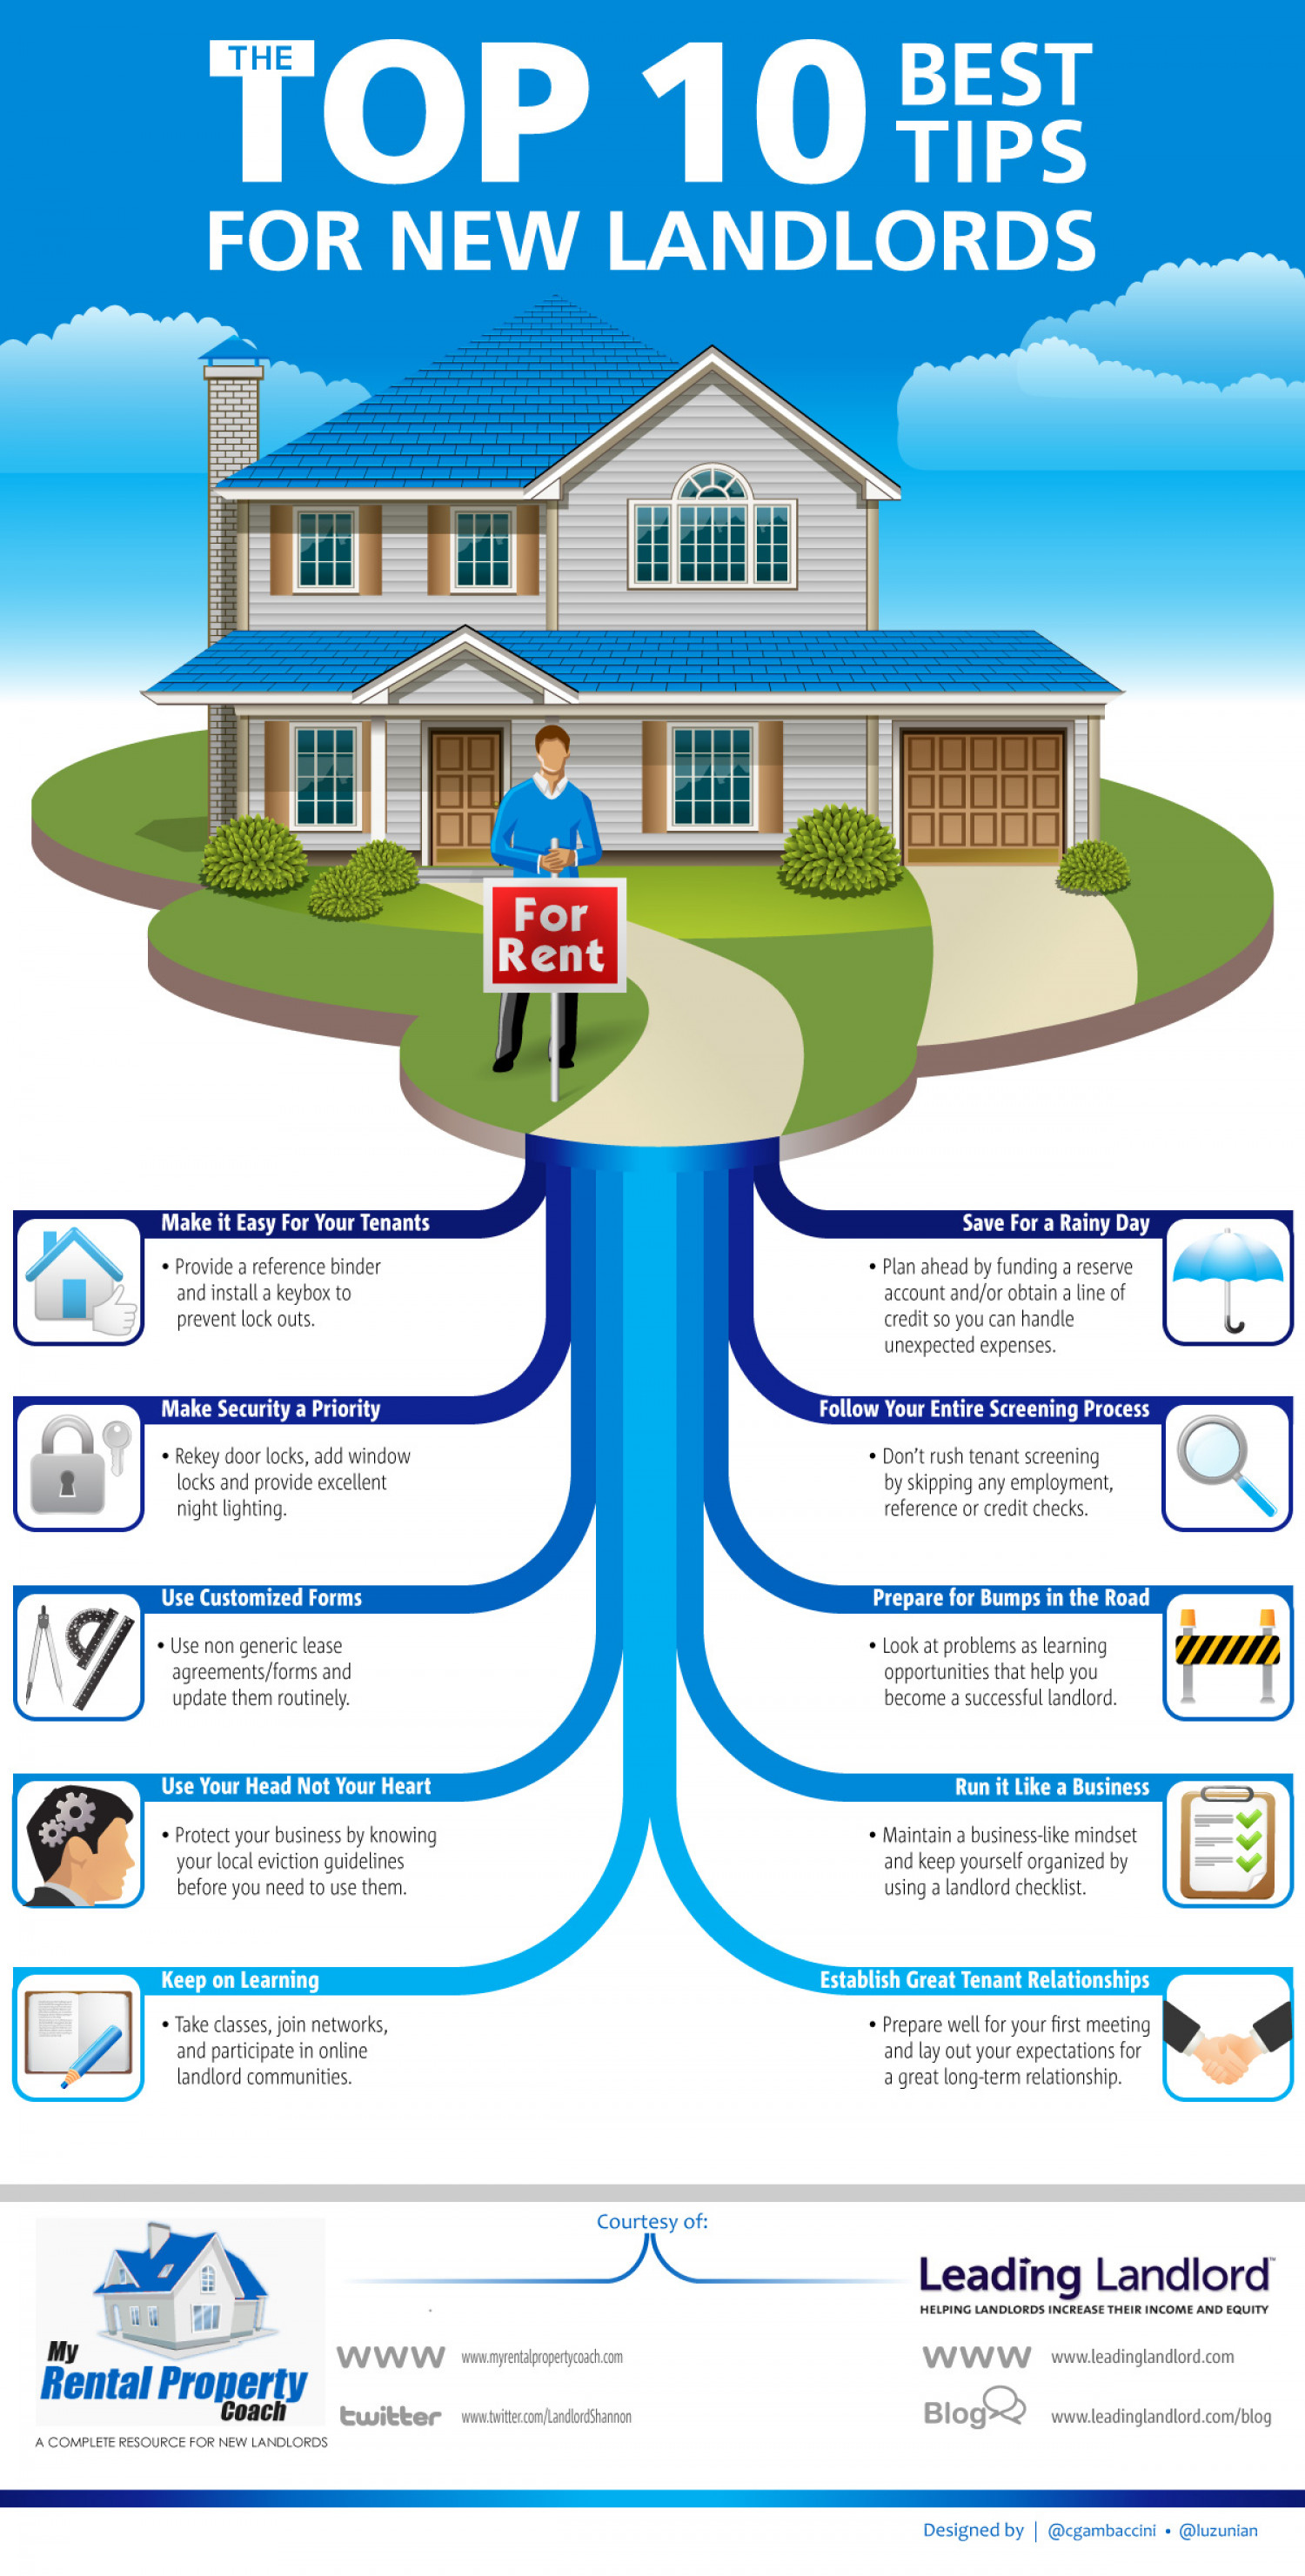 The Top 10 Best Tips for new landlords Infographic